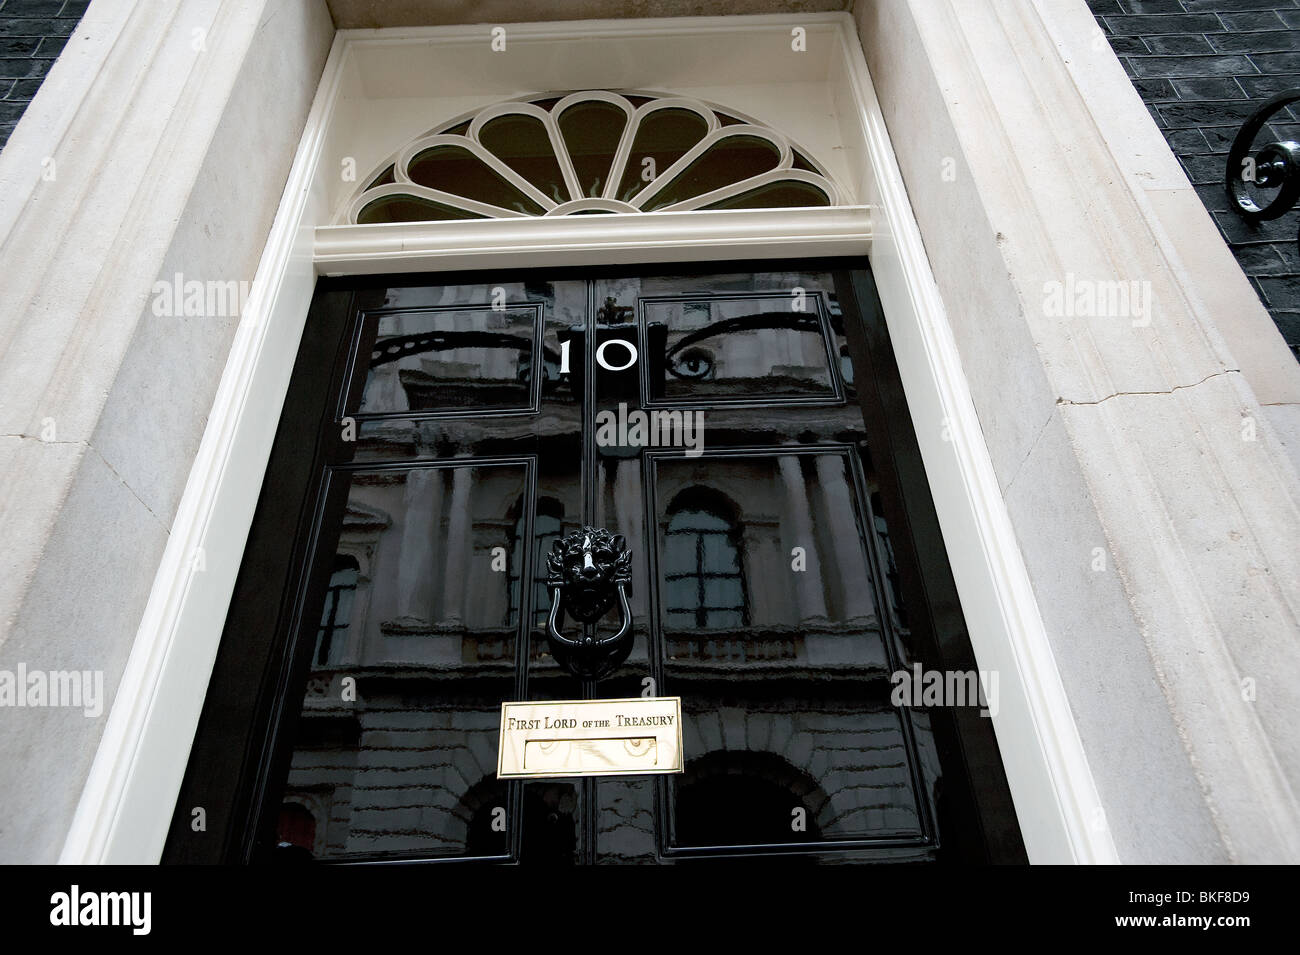 10 Downing Street Floor Plan 10 Downing Street London Stock Photos Amp 10 Downing Street